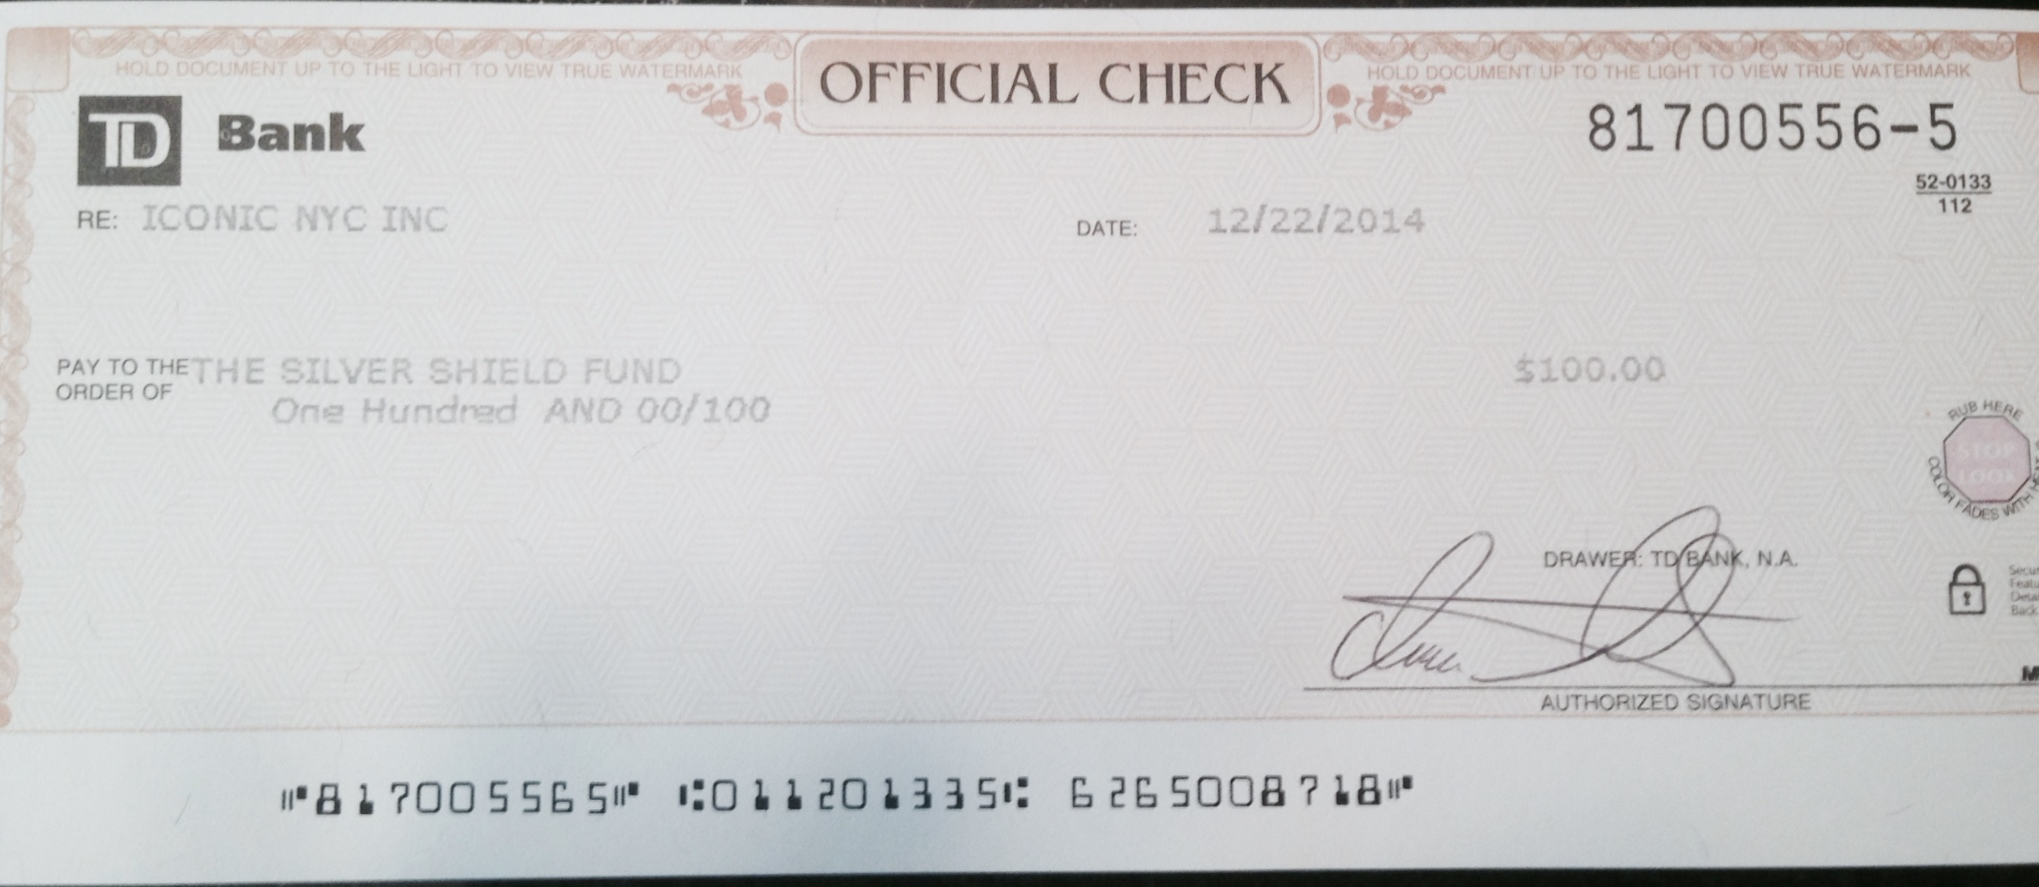 IconicNYC's donation to the Silver Shield Foundation. Small in $ size but represents 50% of our bank balance.